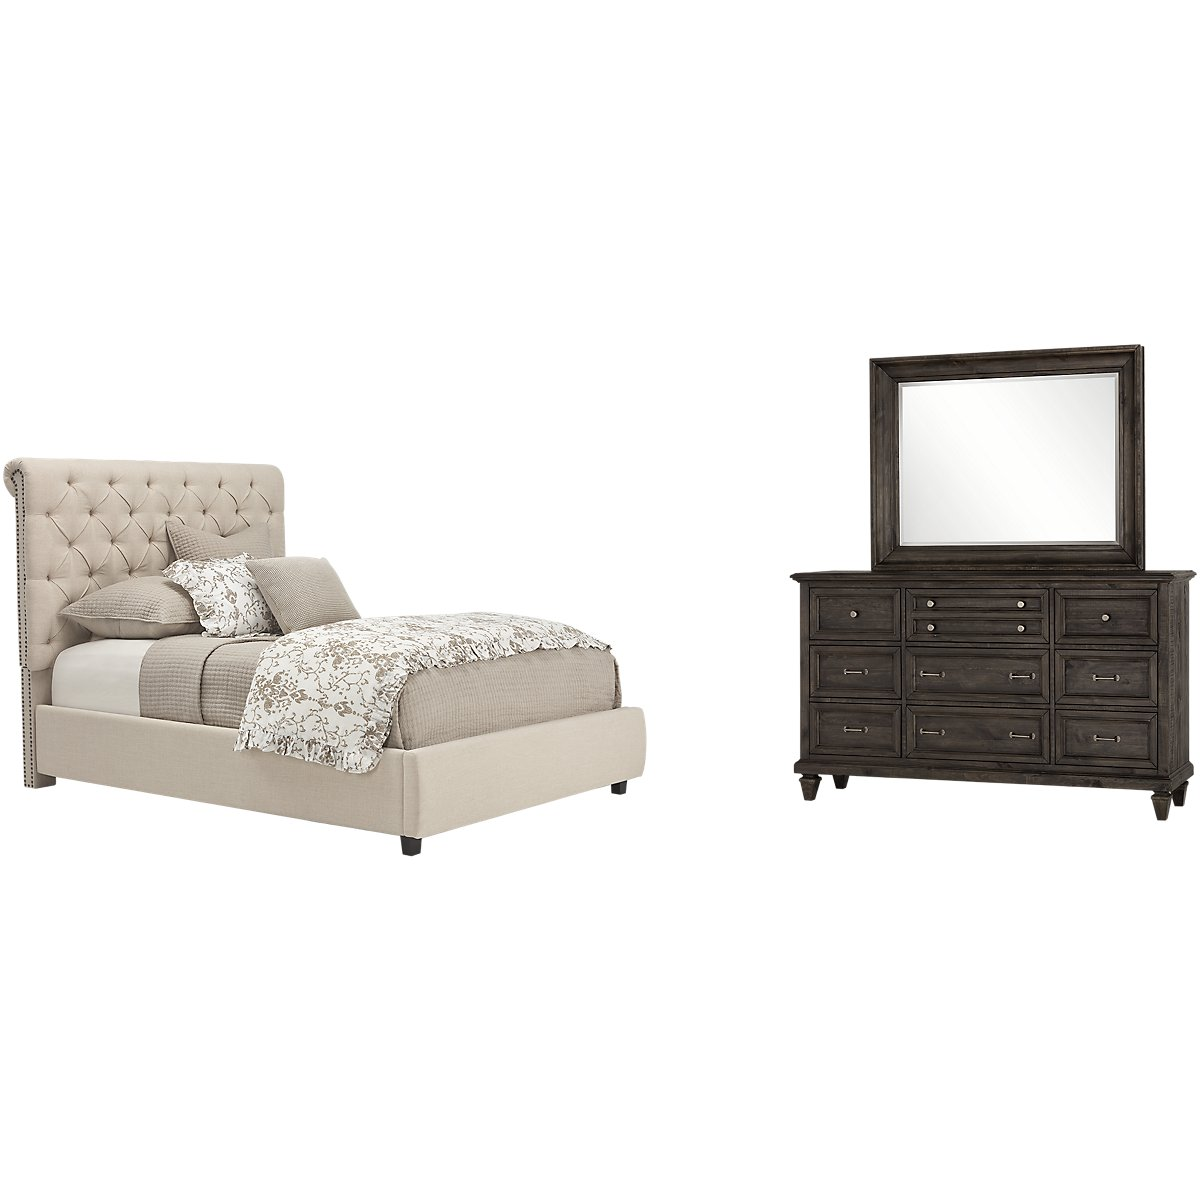 Durham Beige Upholstered Platform Bedroom